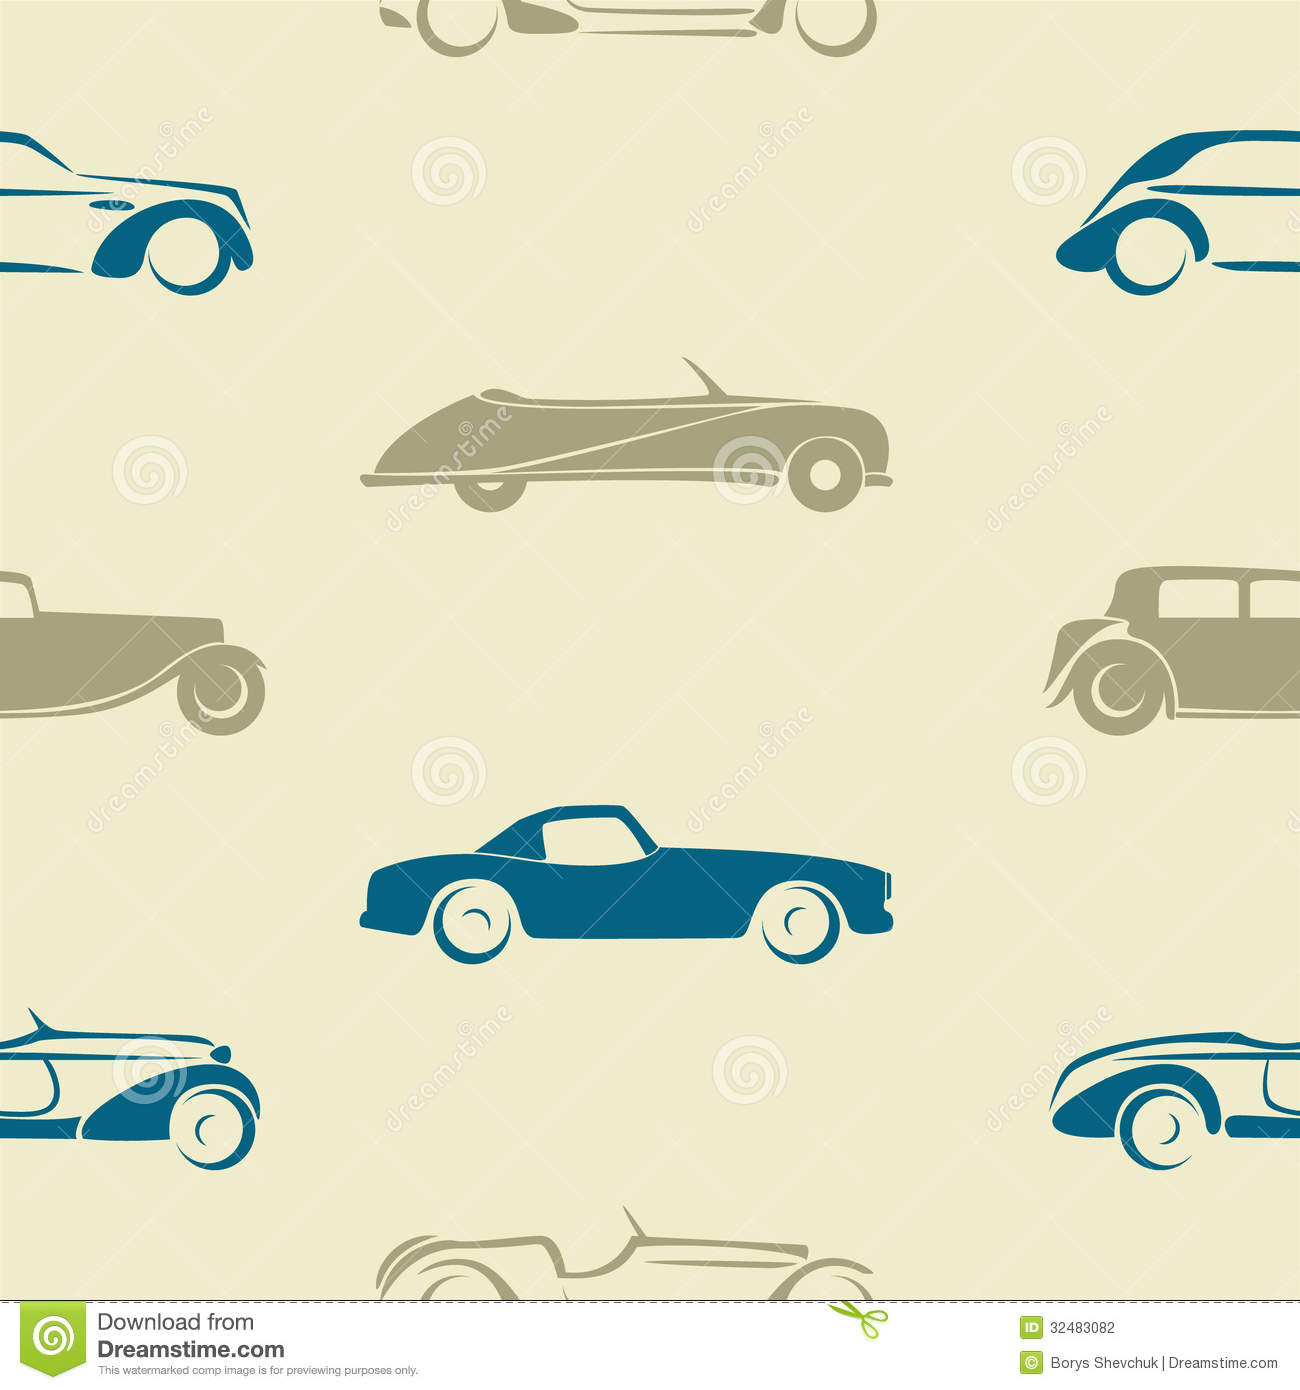 Car Wash Business Plan The Business Plan For Your Auto